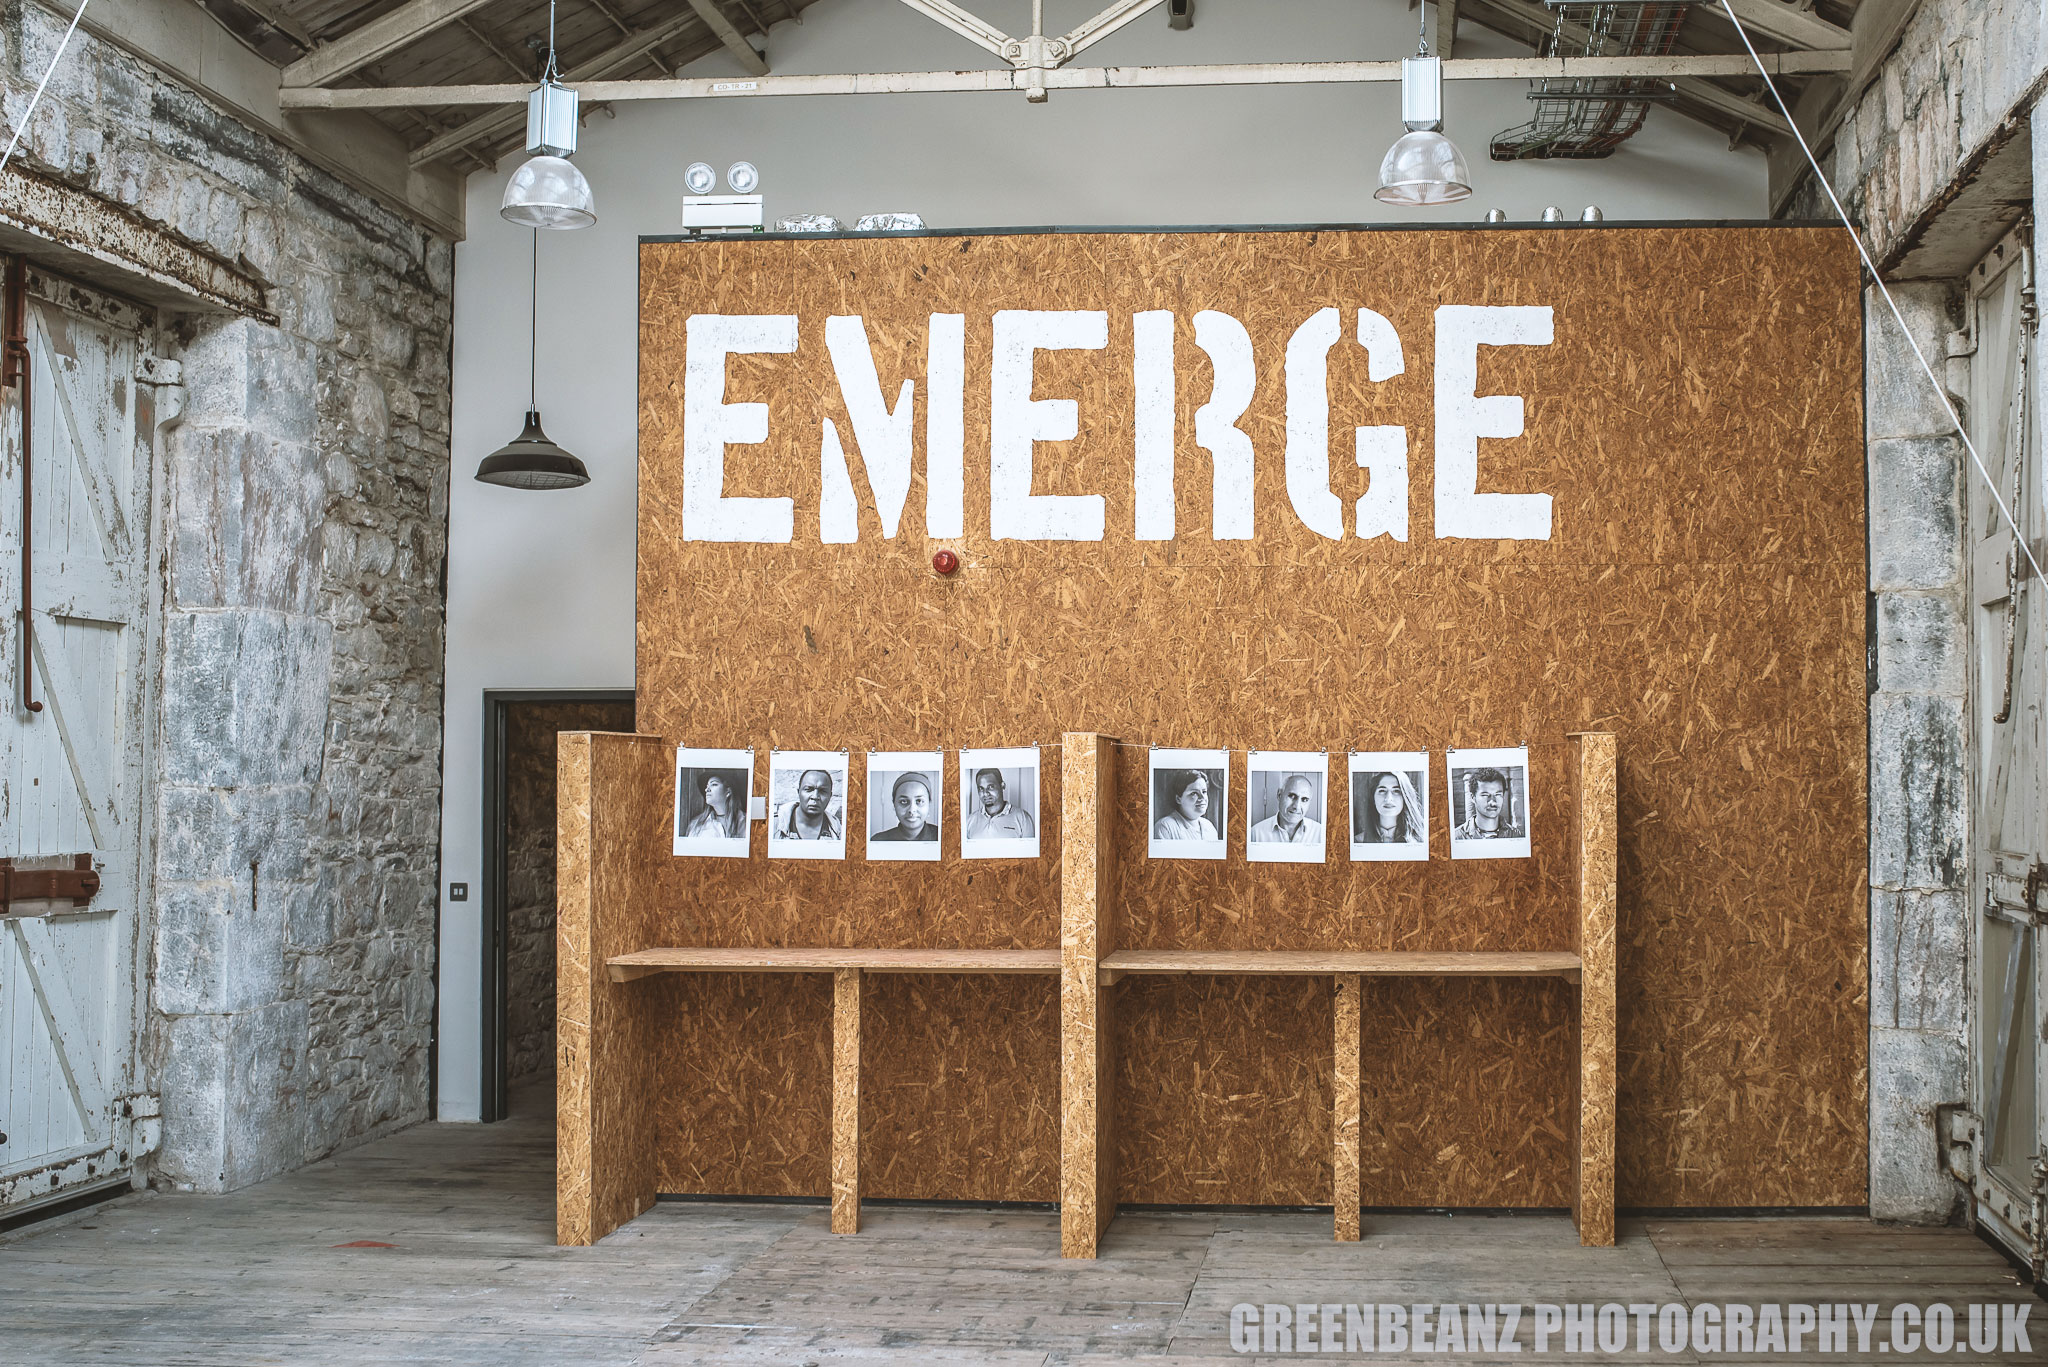 Emerge held a show entitled 'Together' showing work from some of the cities Reugee population at The Royal William Yard